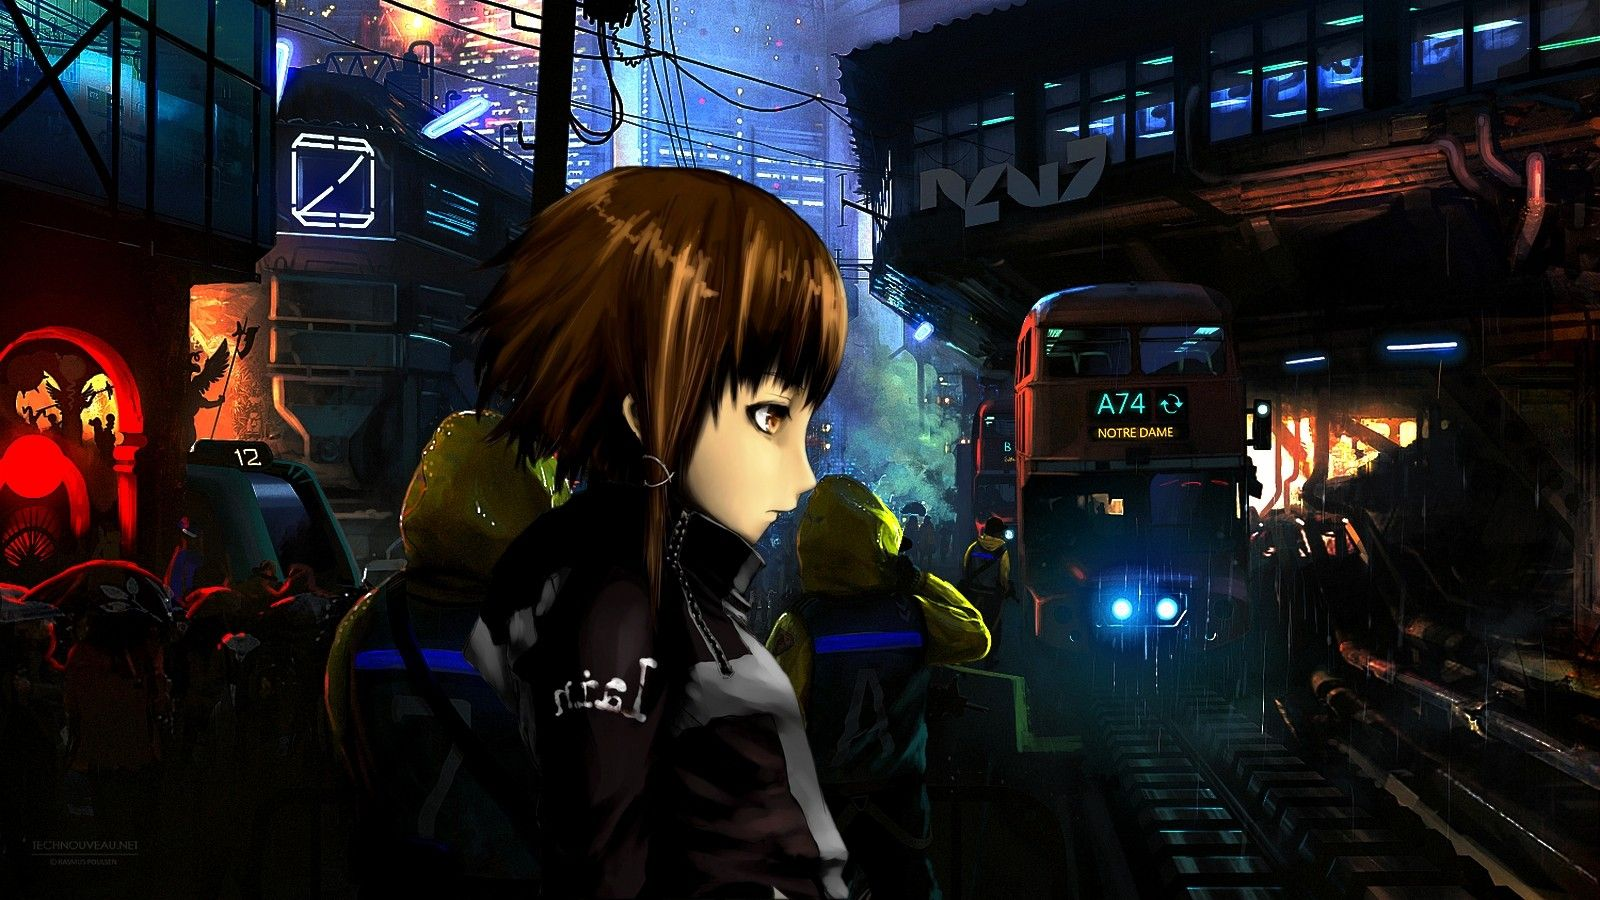 cyberpunk anime serial experiments lain traffic